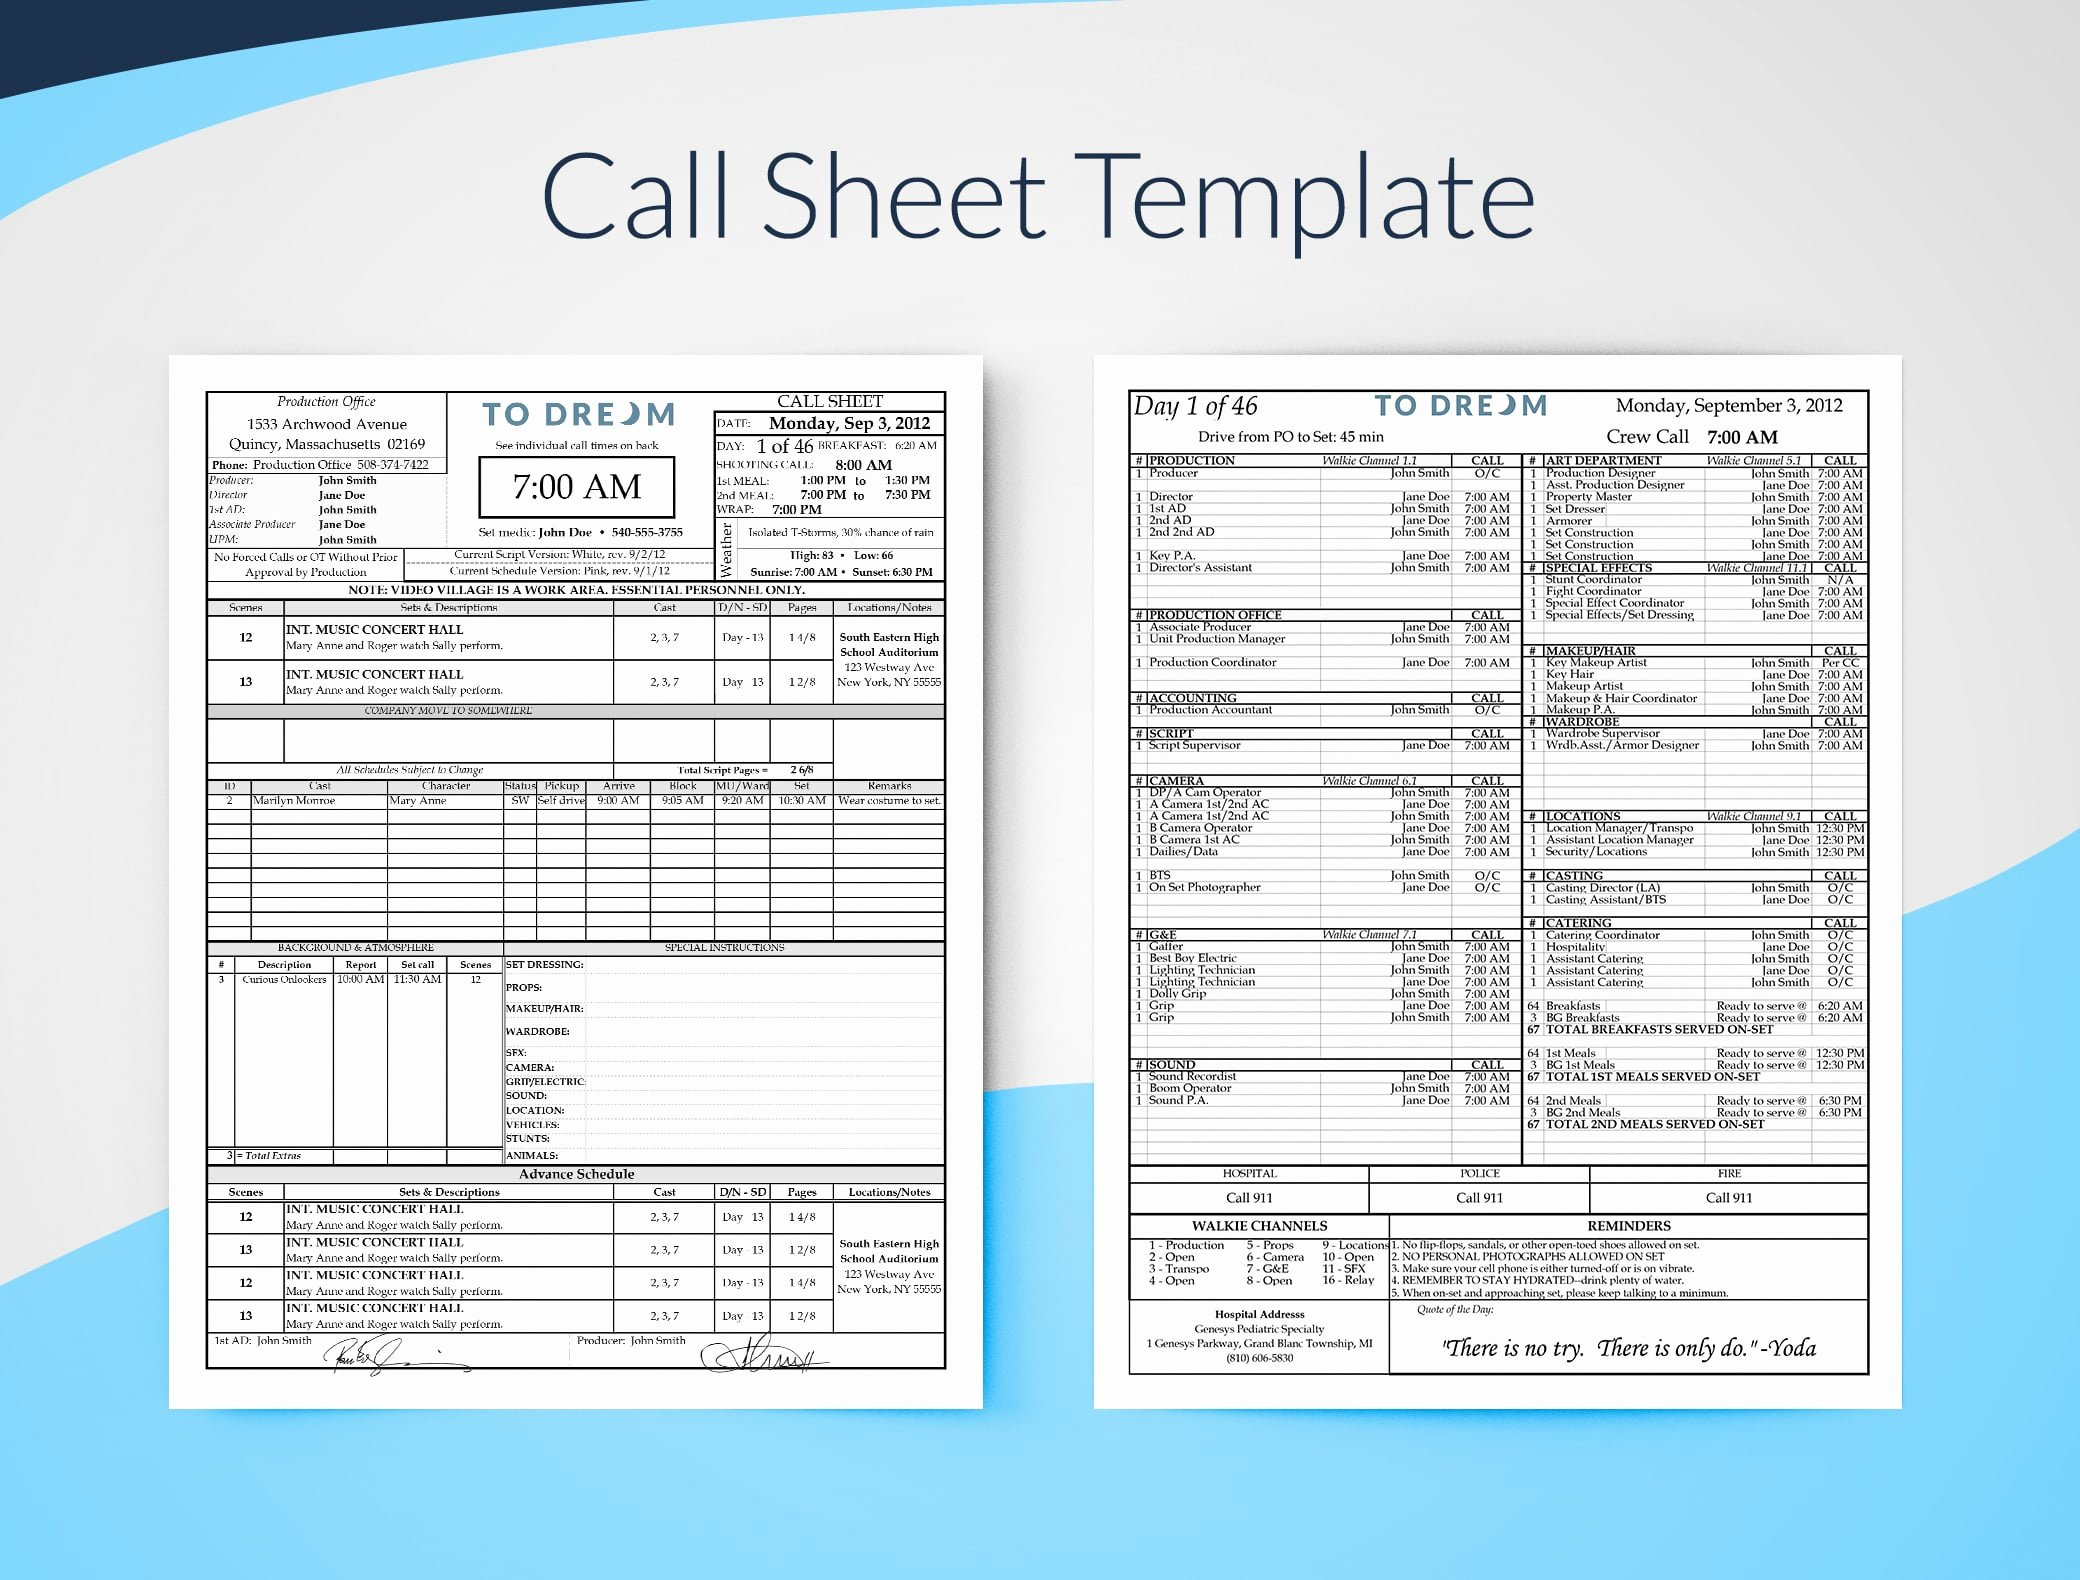 Call Sheet Template Excel Luxury Call Sheet Template for Excel Free Download